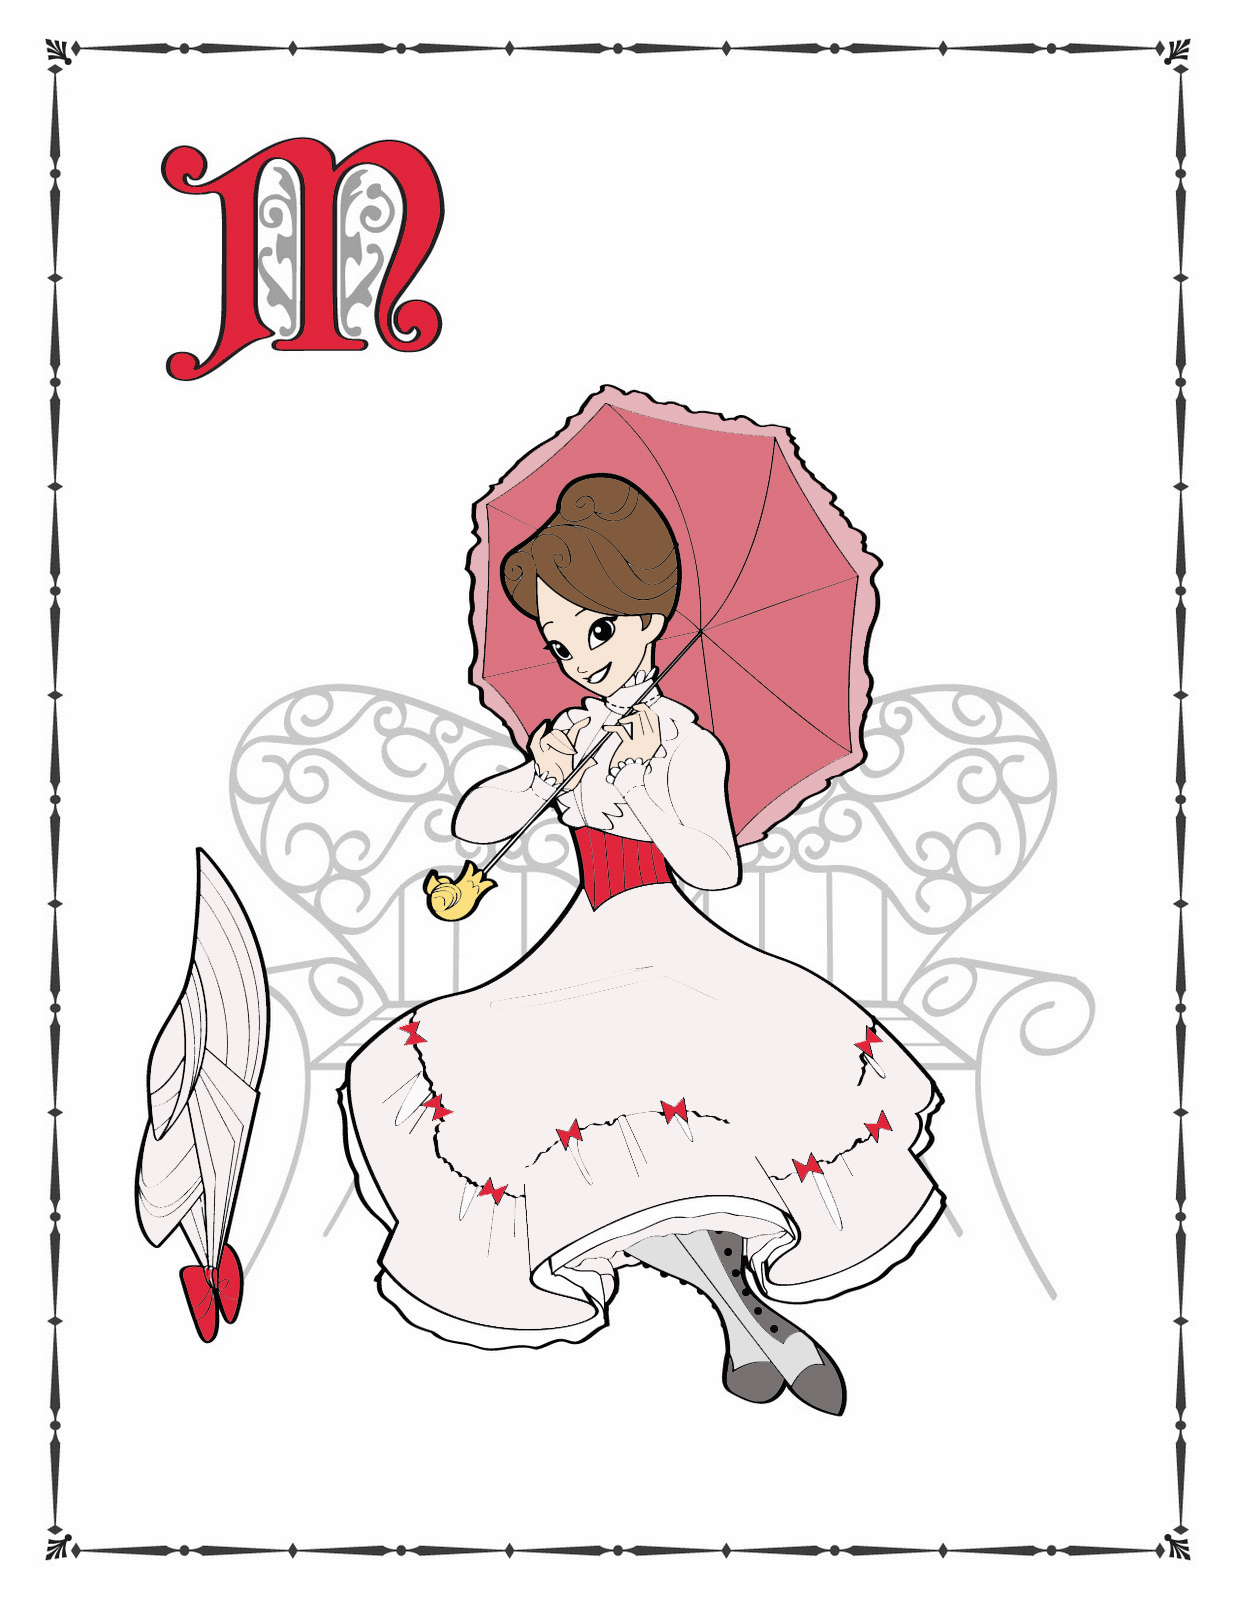 Where Can I Find Mary Poppins Characters Coloring Pages?